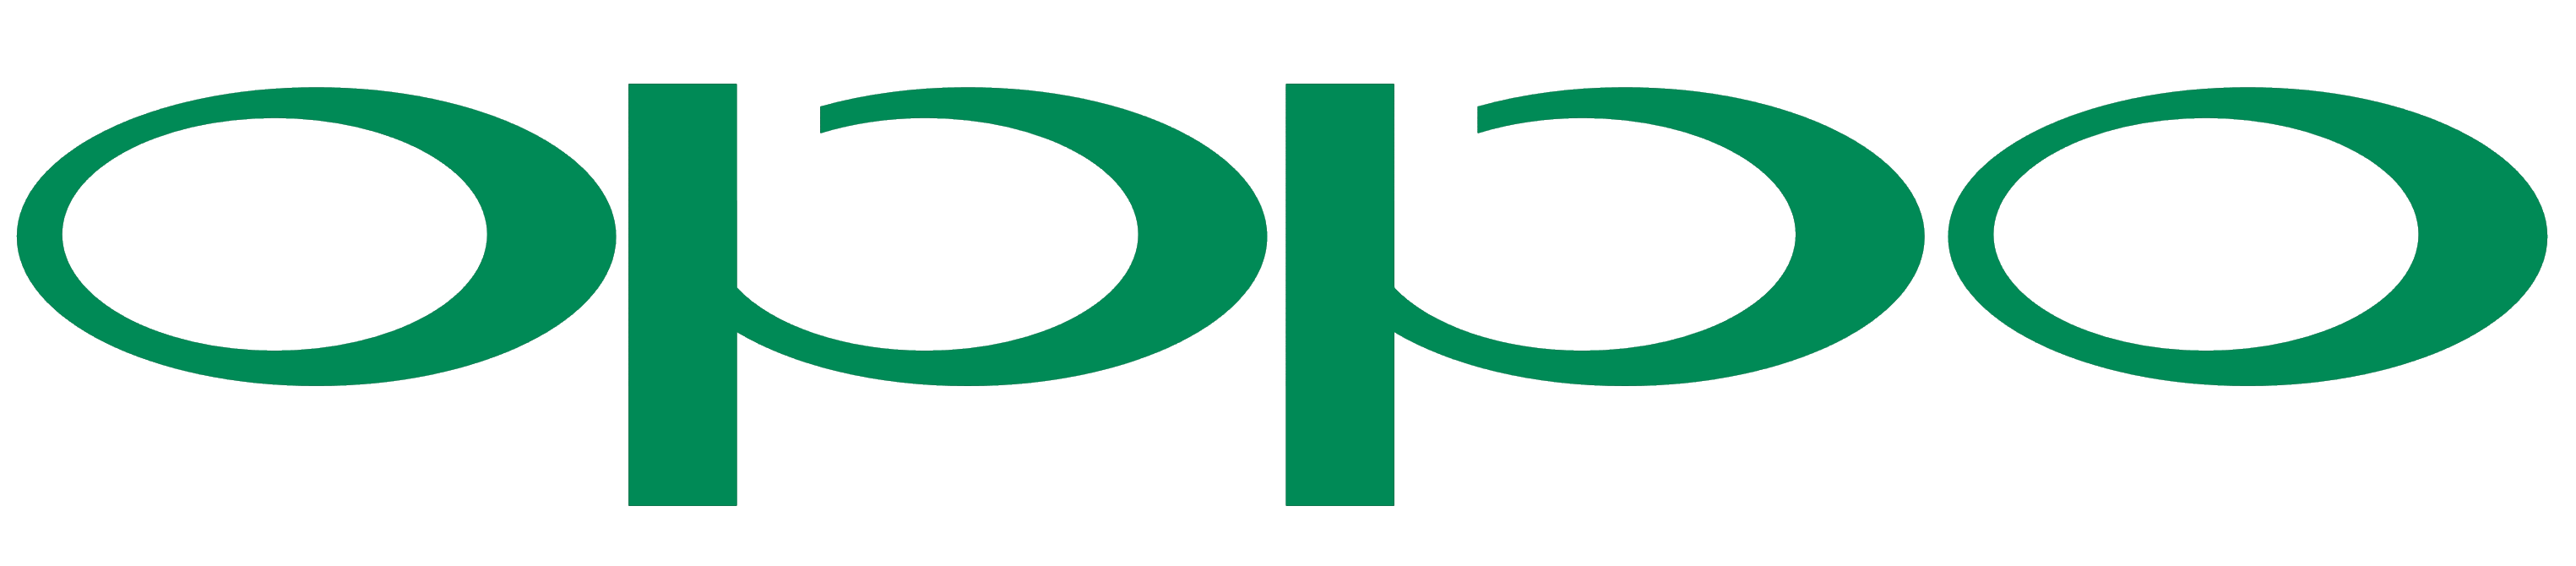 Oppo – Logos, Brands And Logotypes - Oppo Logo PNG